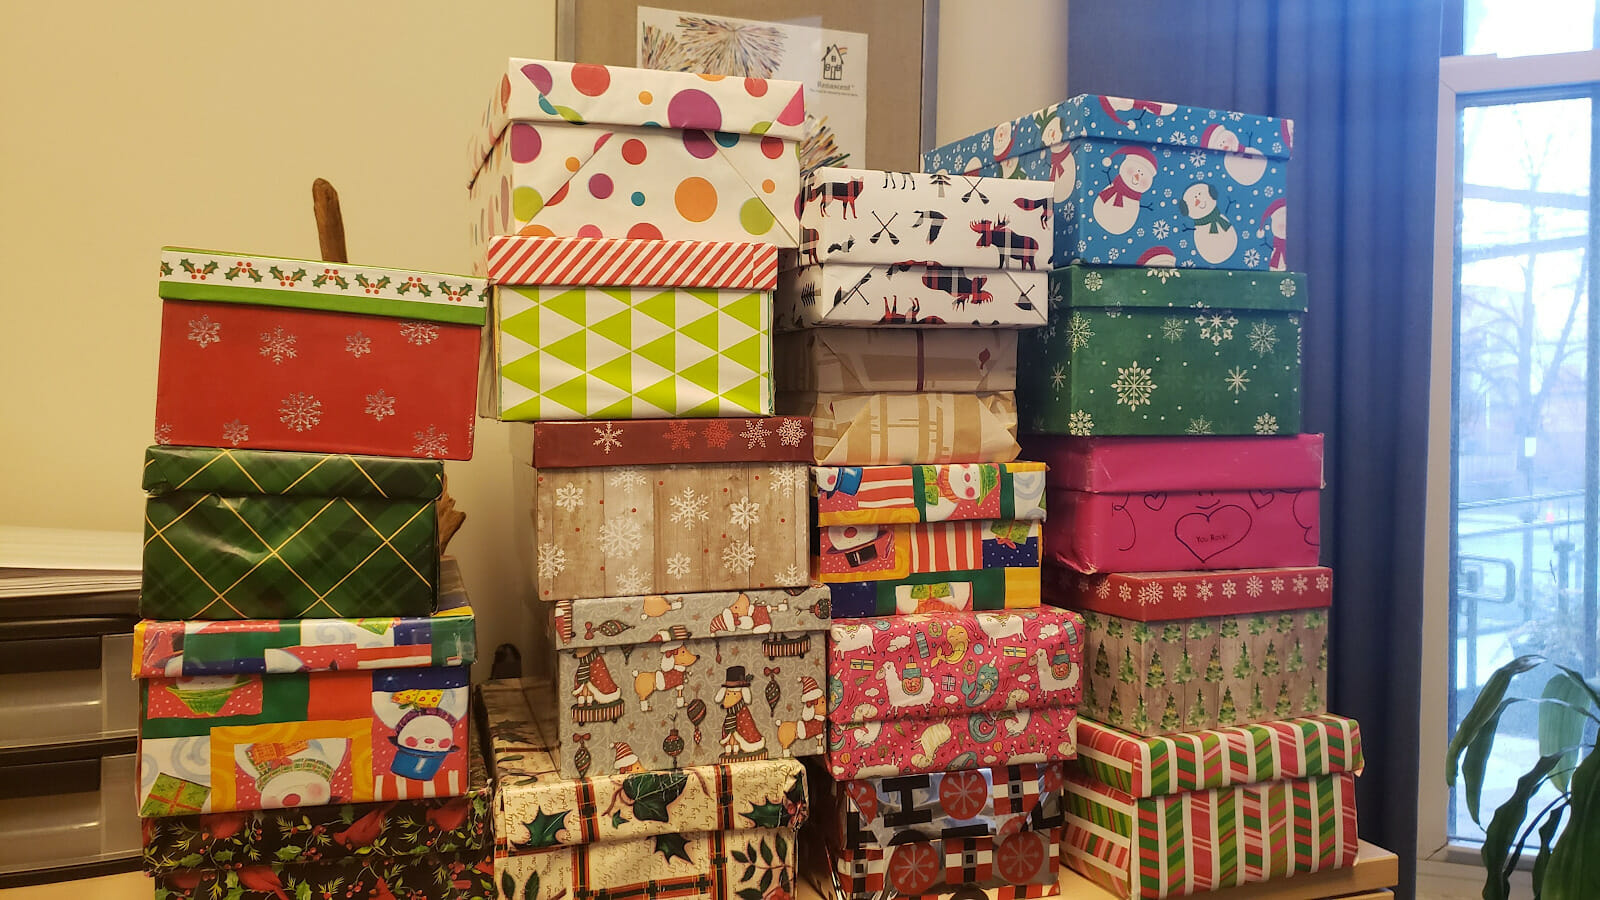 Presents wrapped and stacked up.